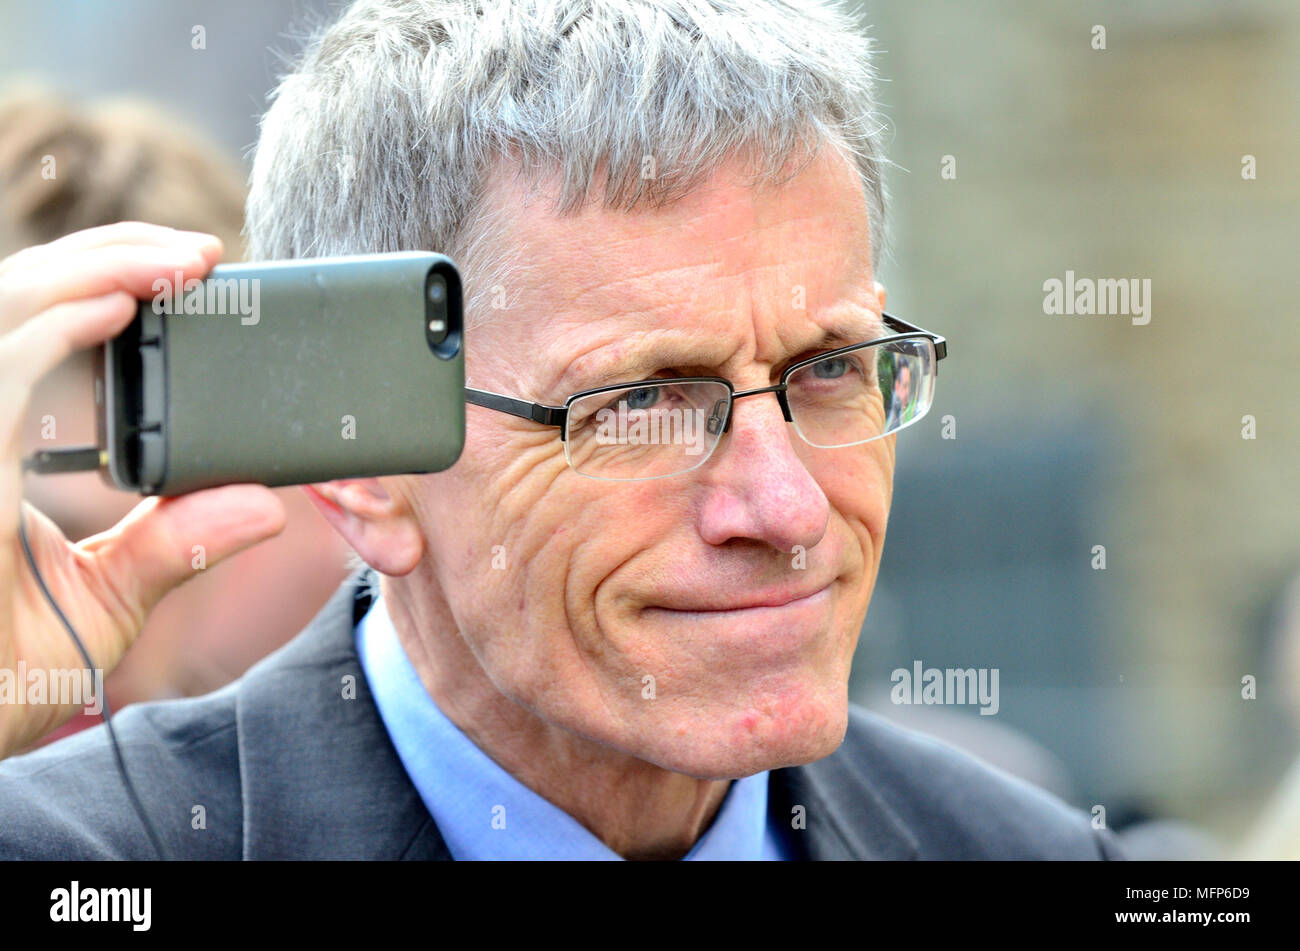 Simon Calder - travel writer and broadcaster - filming an interview on his mobile phone - Stock Image